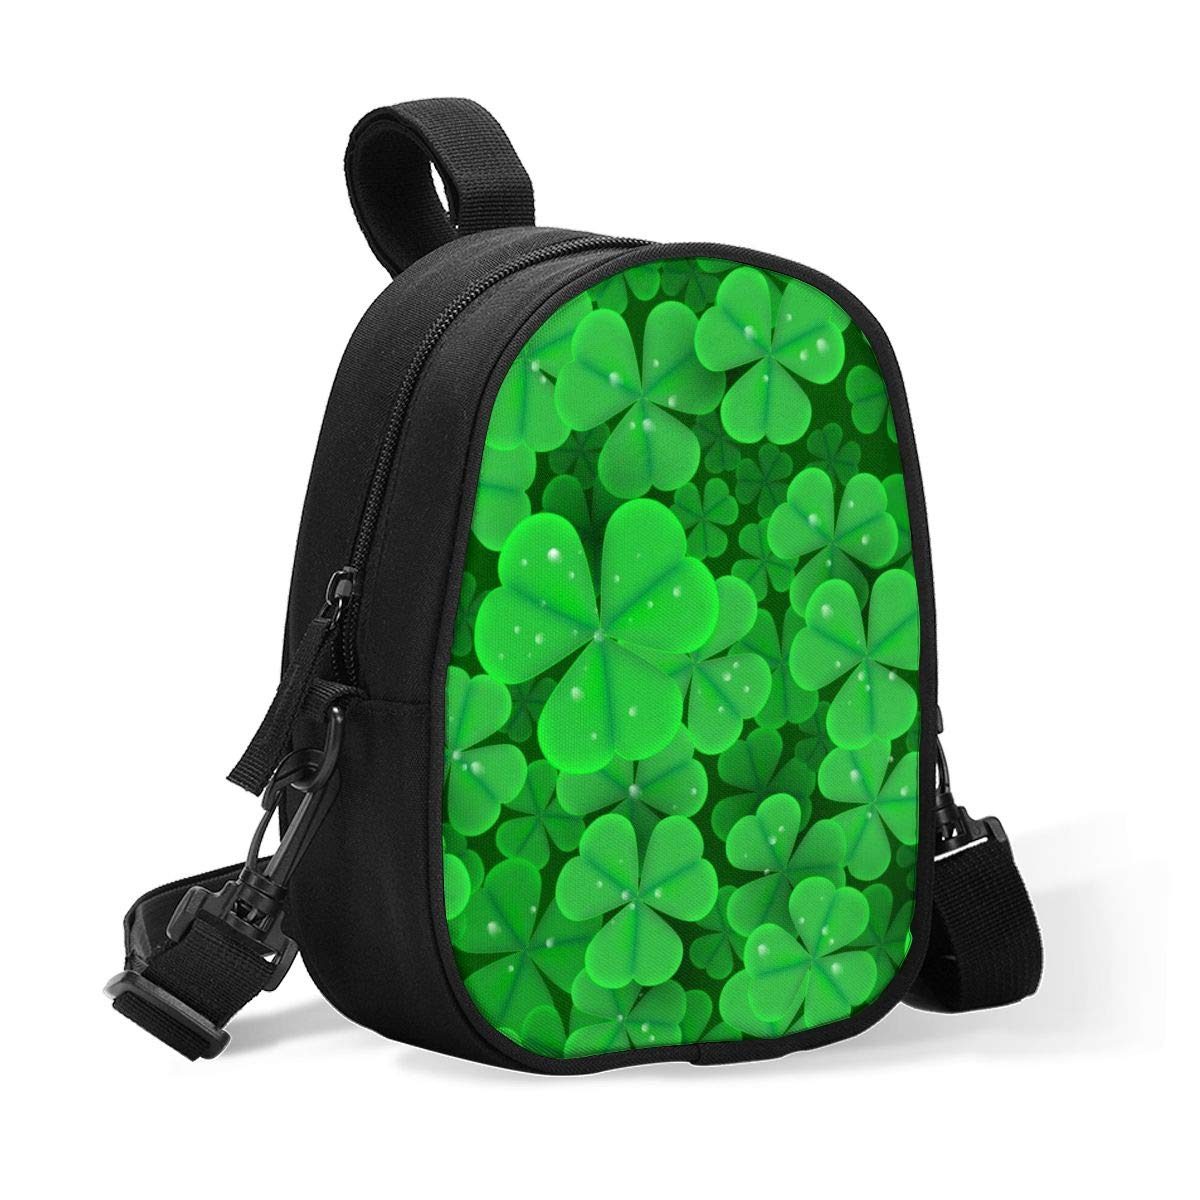 Insulated Baby Bottle Tote Bags for Travel Double Baby Bottle Warmer Or Cool St. Patrick's Day Clover Breastmilk Baby Bottle Cooler & Travel Bag, Easily Attaches to Stroller Or Diaper Bag